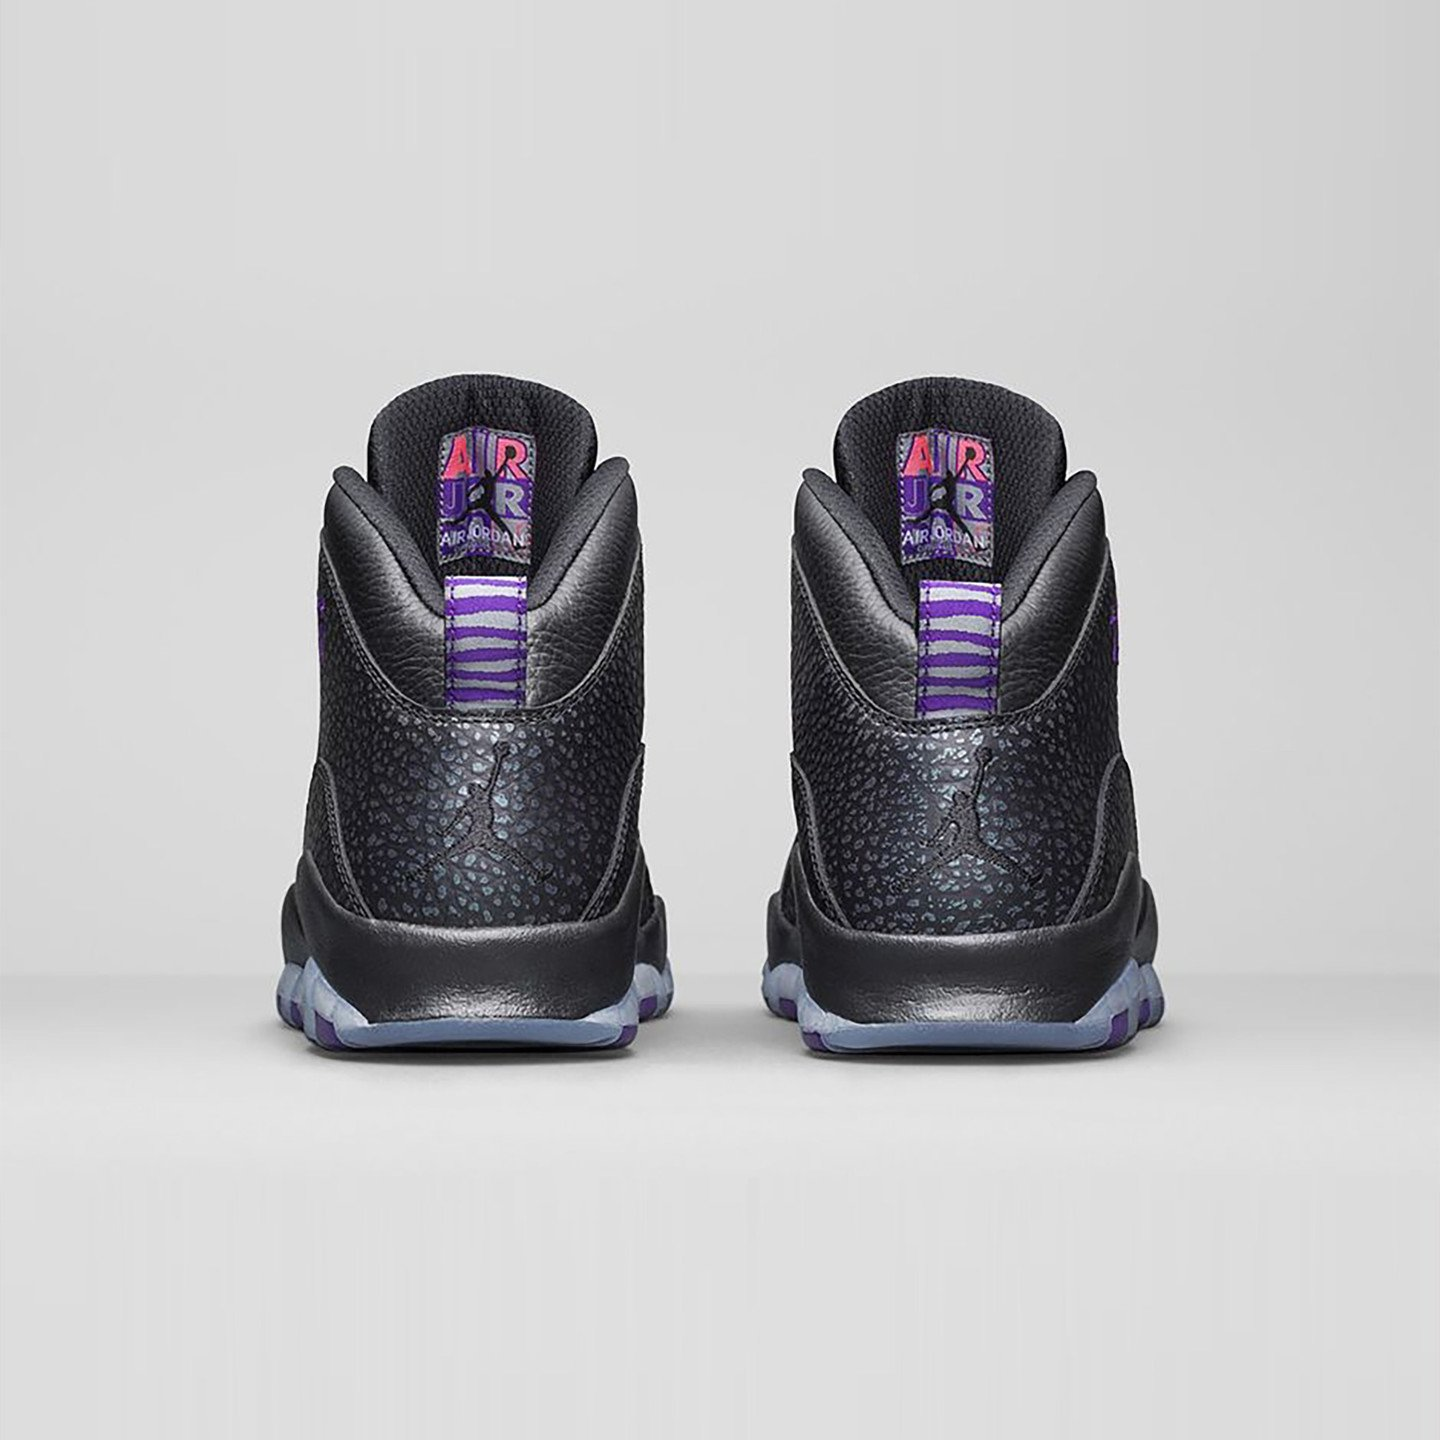 Jordan Air Jordan 10 Retro 'Paris' Black / Fierce Purple 310805-018-42.5